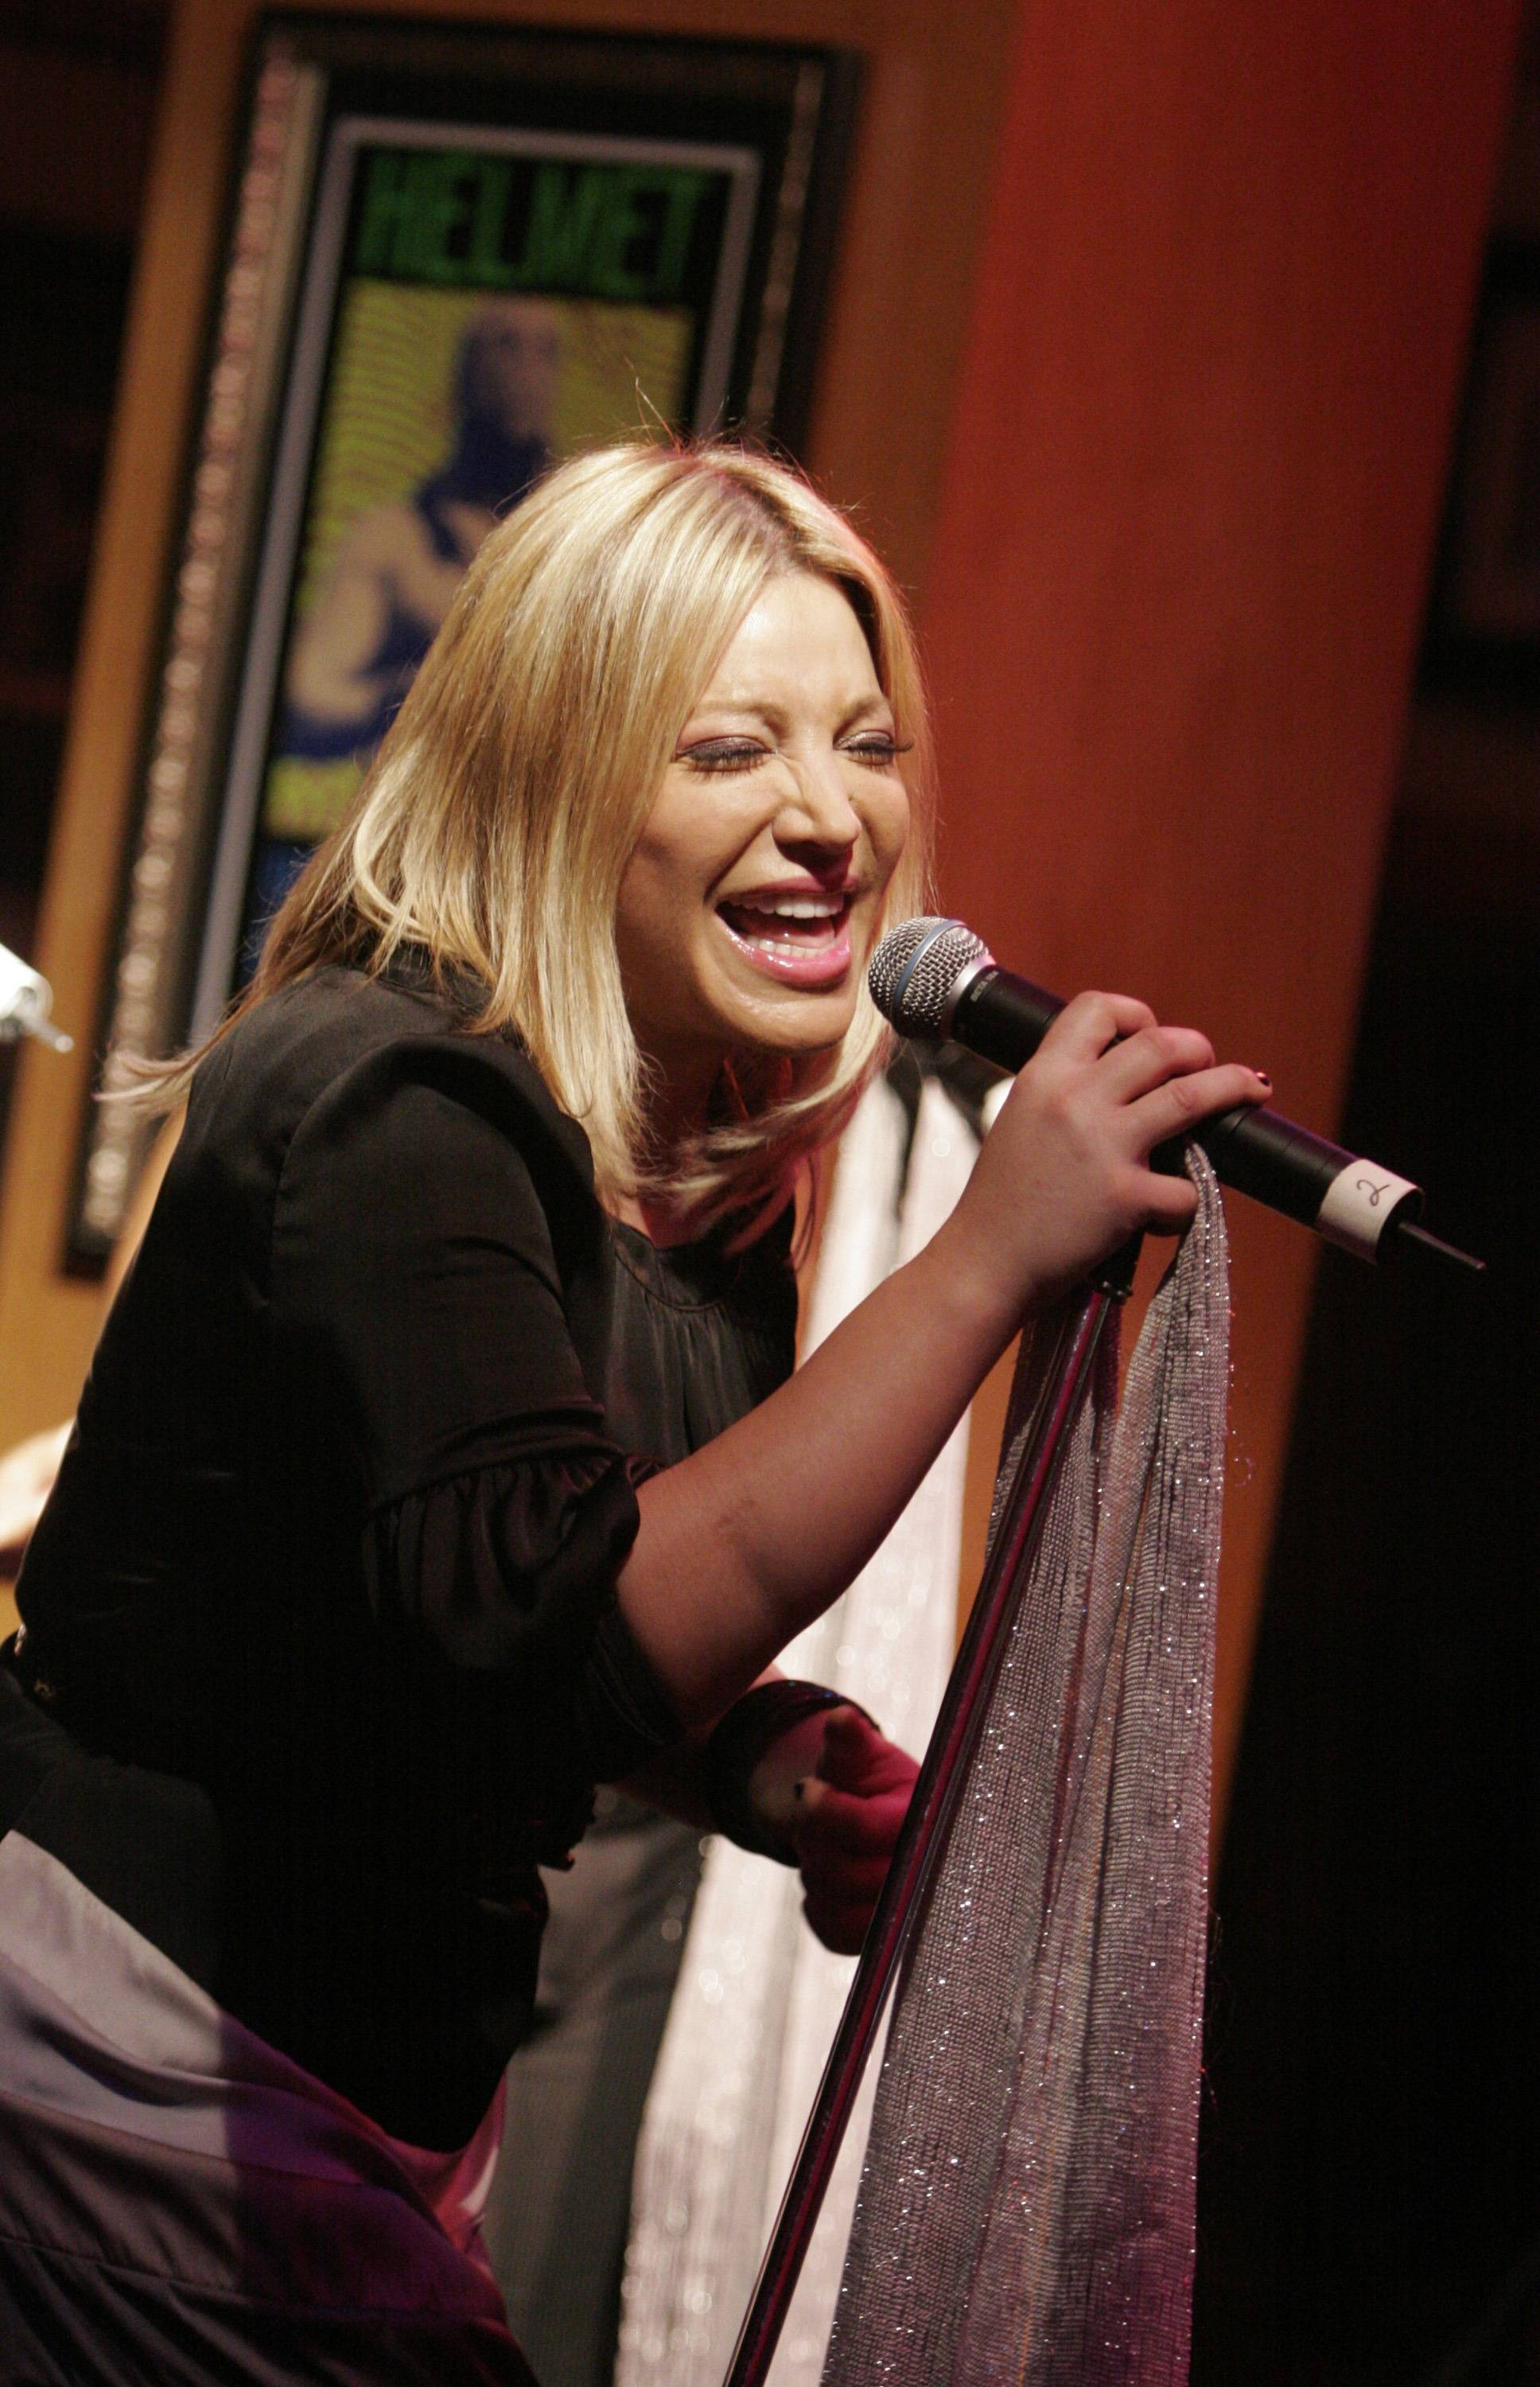 Taylor Dayne will perform at Schaumburg's Septemberfest from 8:30 to 10 p.m. Saturday, Aug. 30 on the village's municipal grounds on Schaumburg Court.